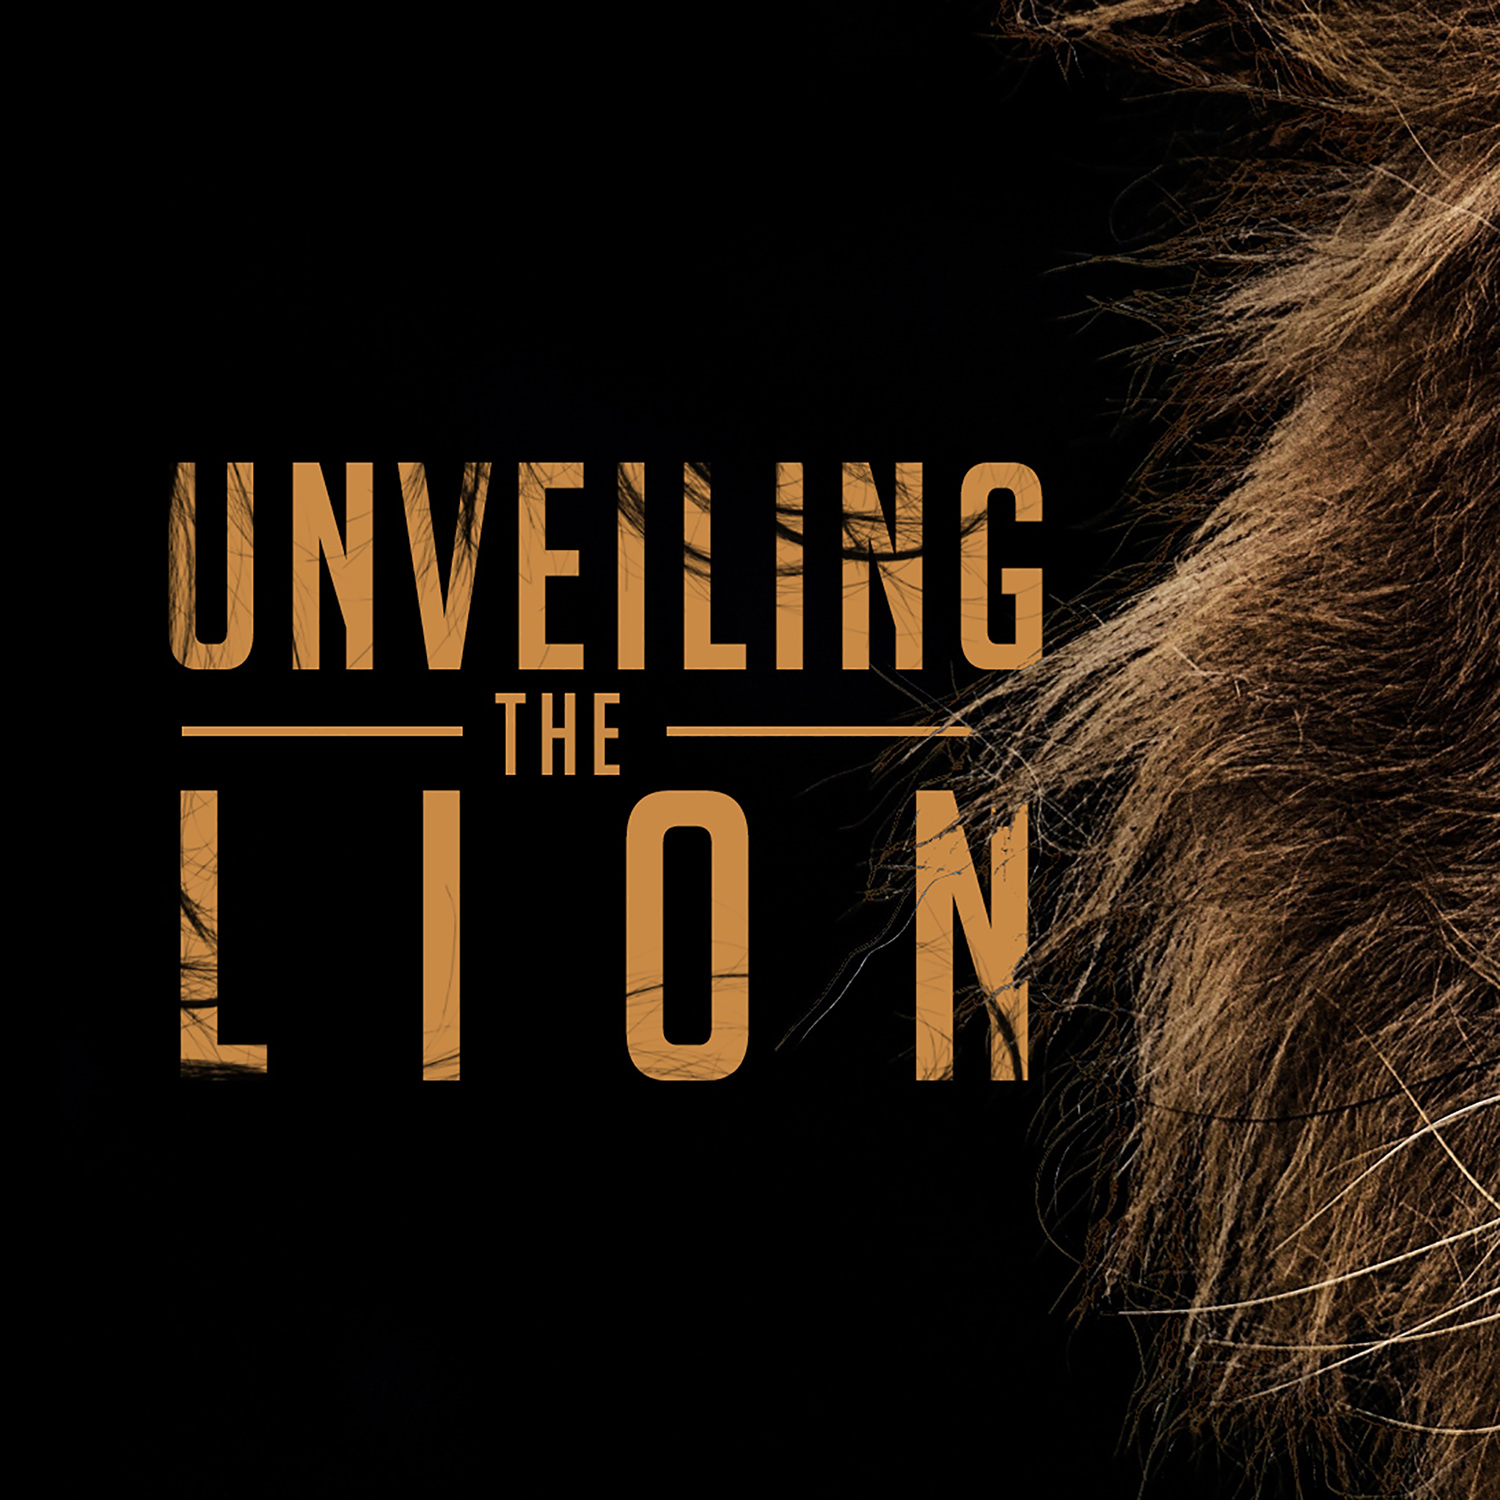 Unveiling the Lion